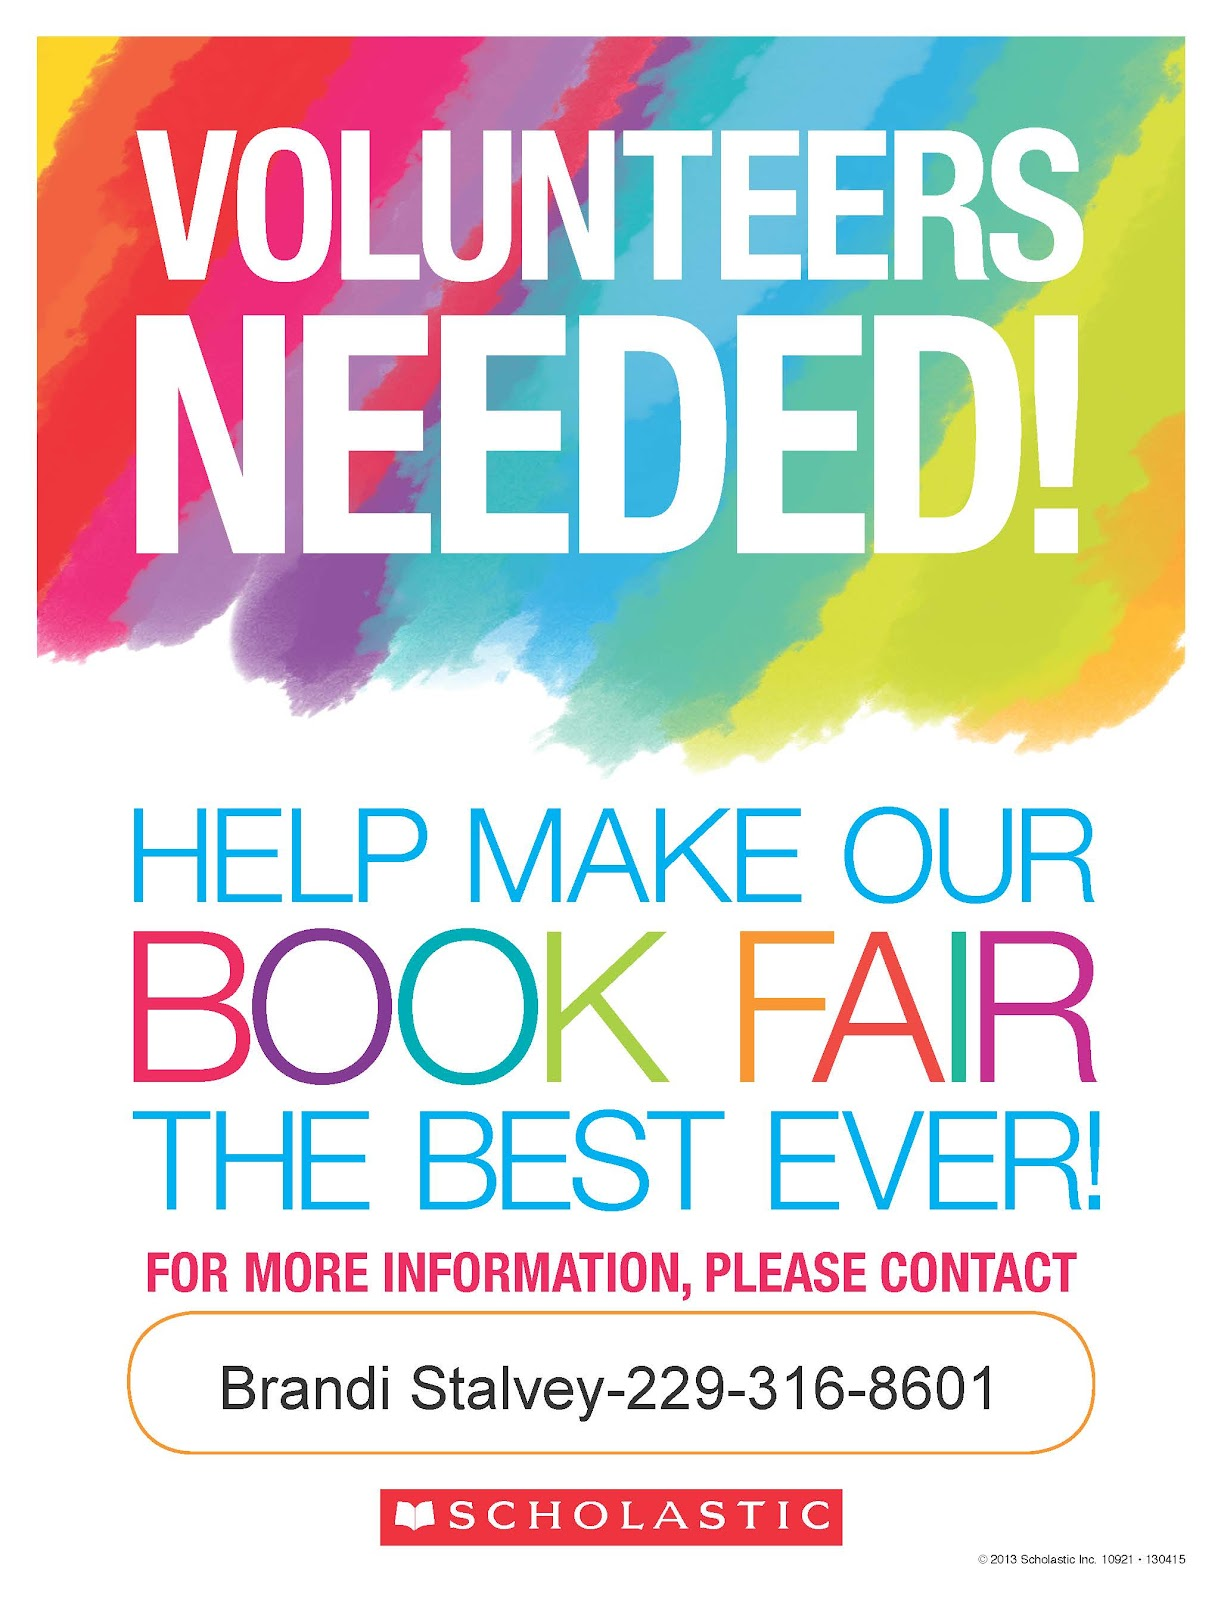 130415_volunteer_kit_recruitment_poster_color.jpg